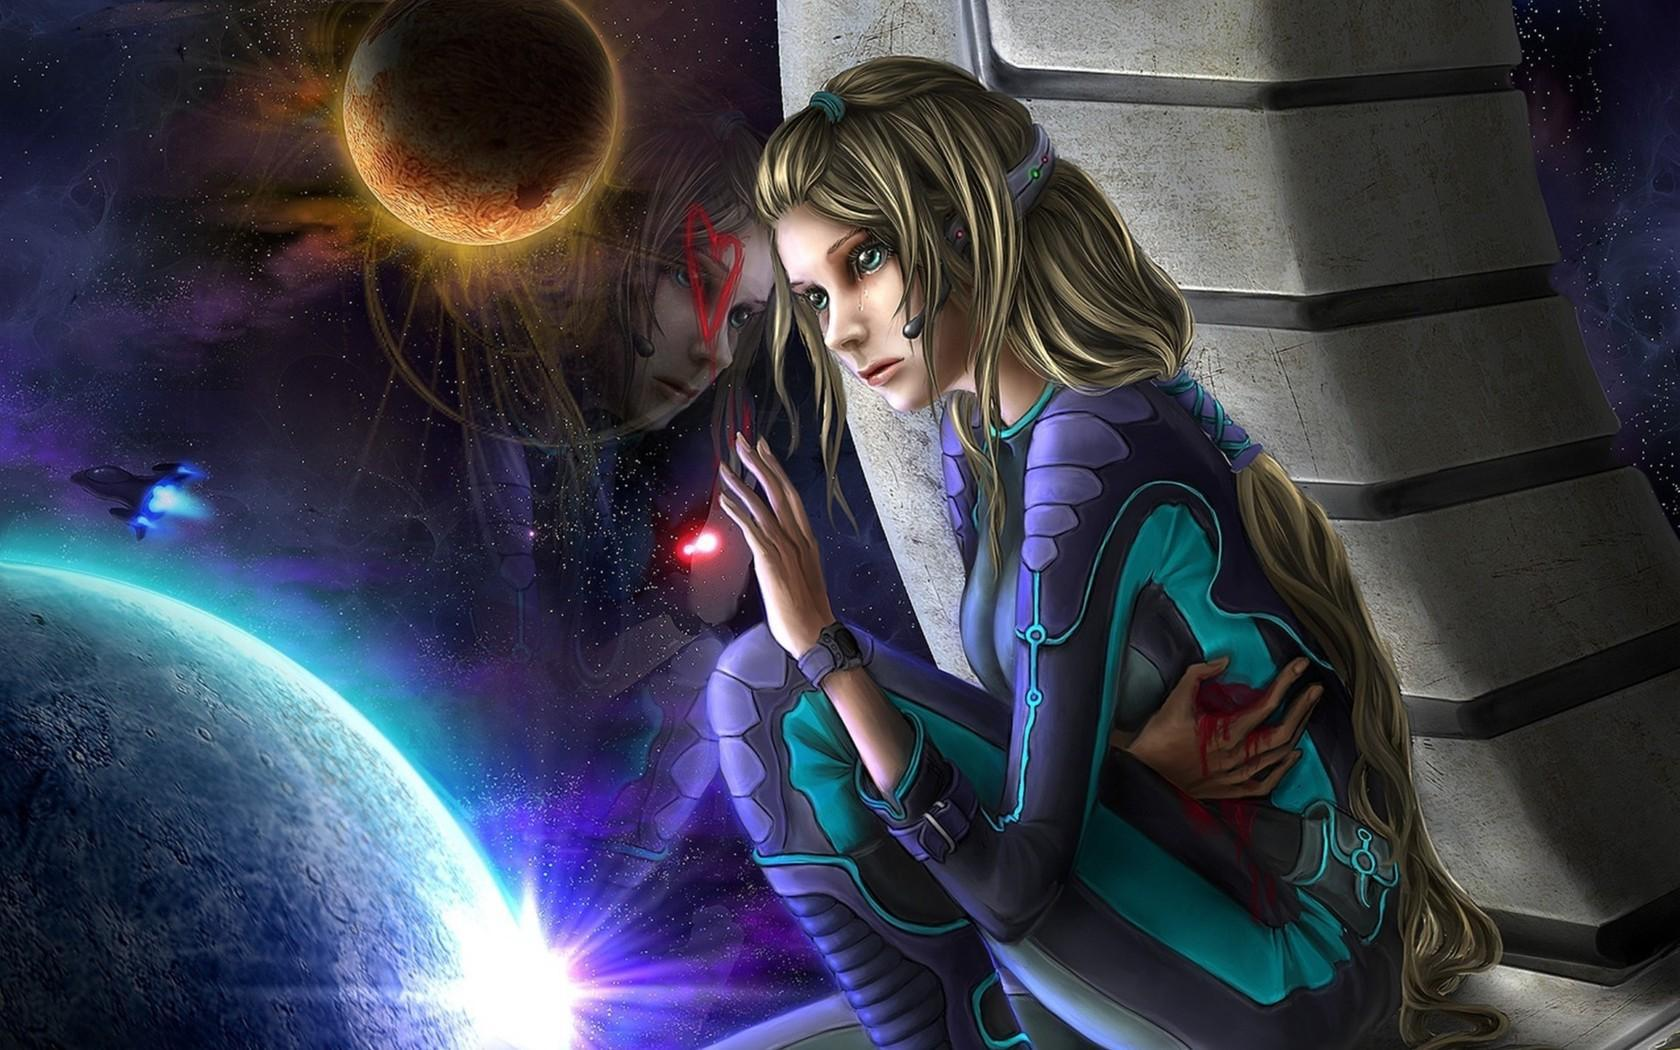 girl in space suit wallpaper - photo #11